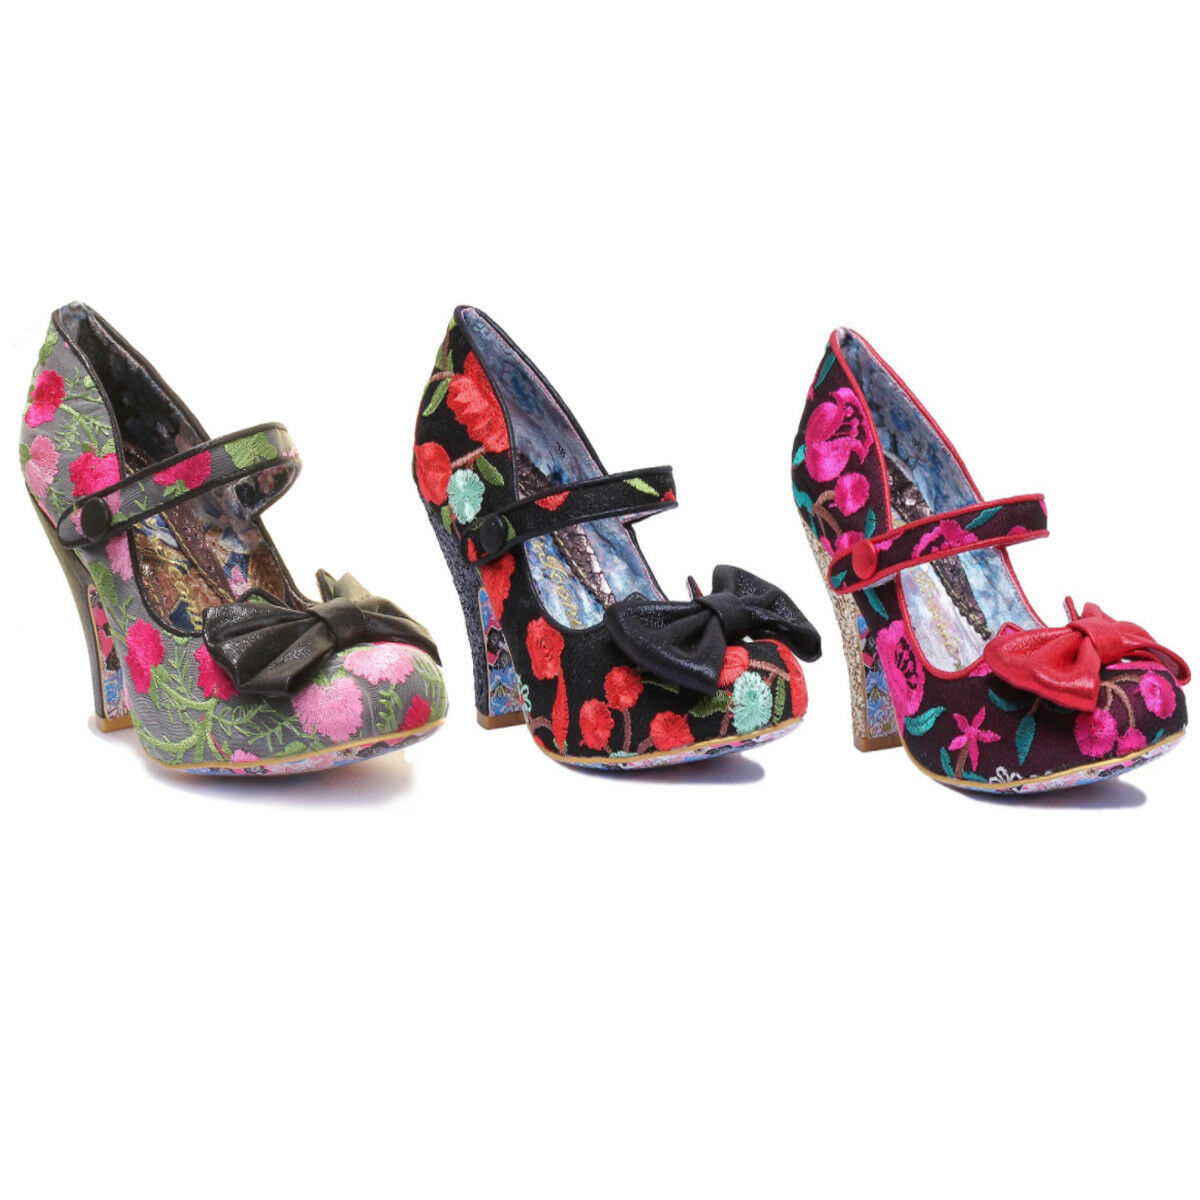 Irregular Choice Fancy This Womens Floral Print Closed Toe Heels Shoes Size UK 3